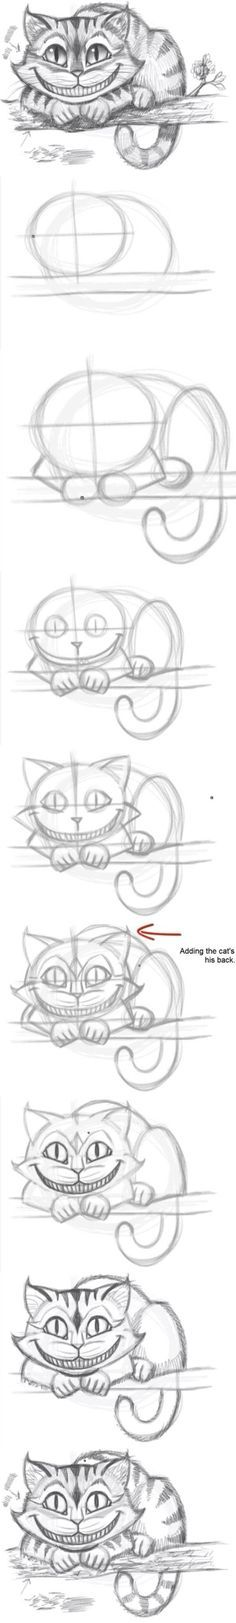 DIY fácilmente dibujar el gato de Cheshire Tutorial LIKE Us on Facebook ==> https://www.facebook.com/UsefulDiy